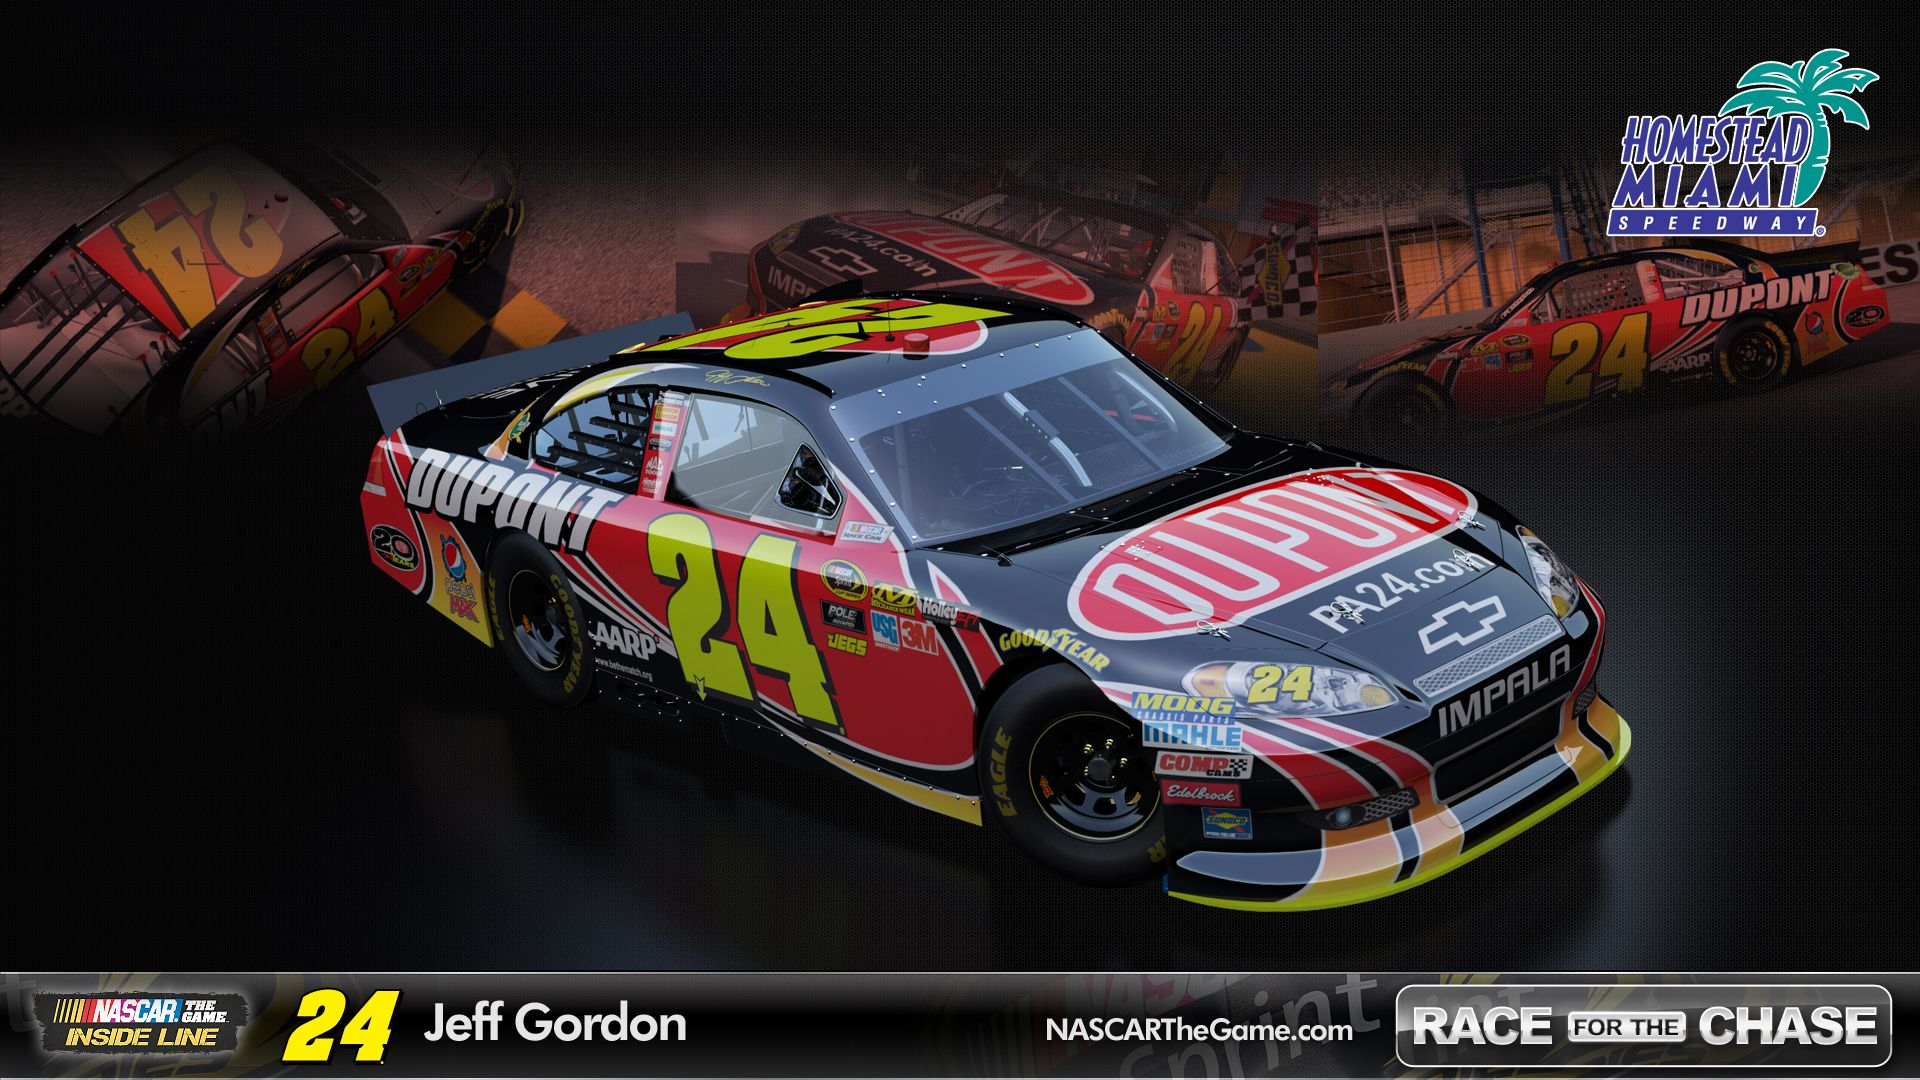 Free Screensavers Jeff Gordon Definition Wallpaper Com Photo Jeff Gordon Desktop Wallpapers 2 Html Nascar Screen Savers Jeff Gordon